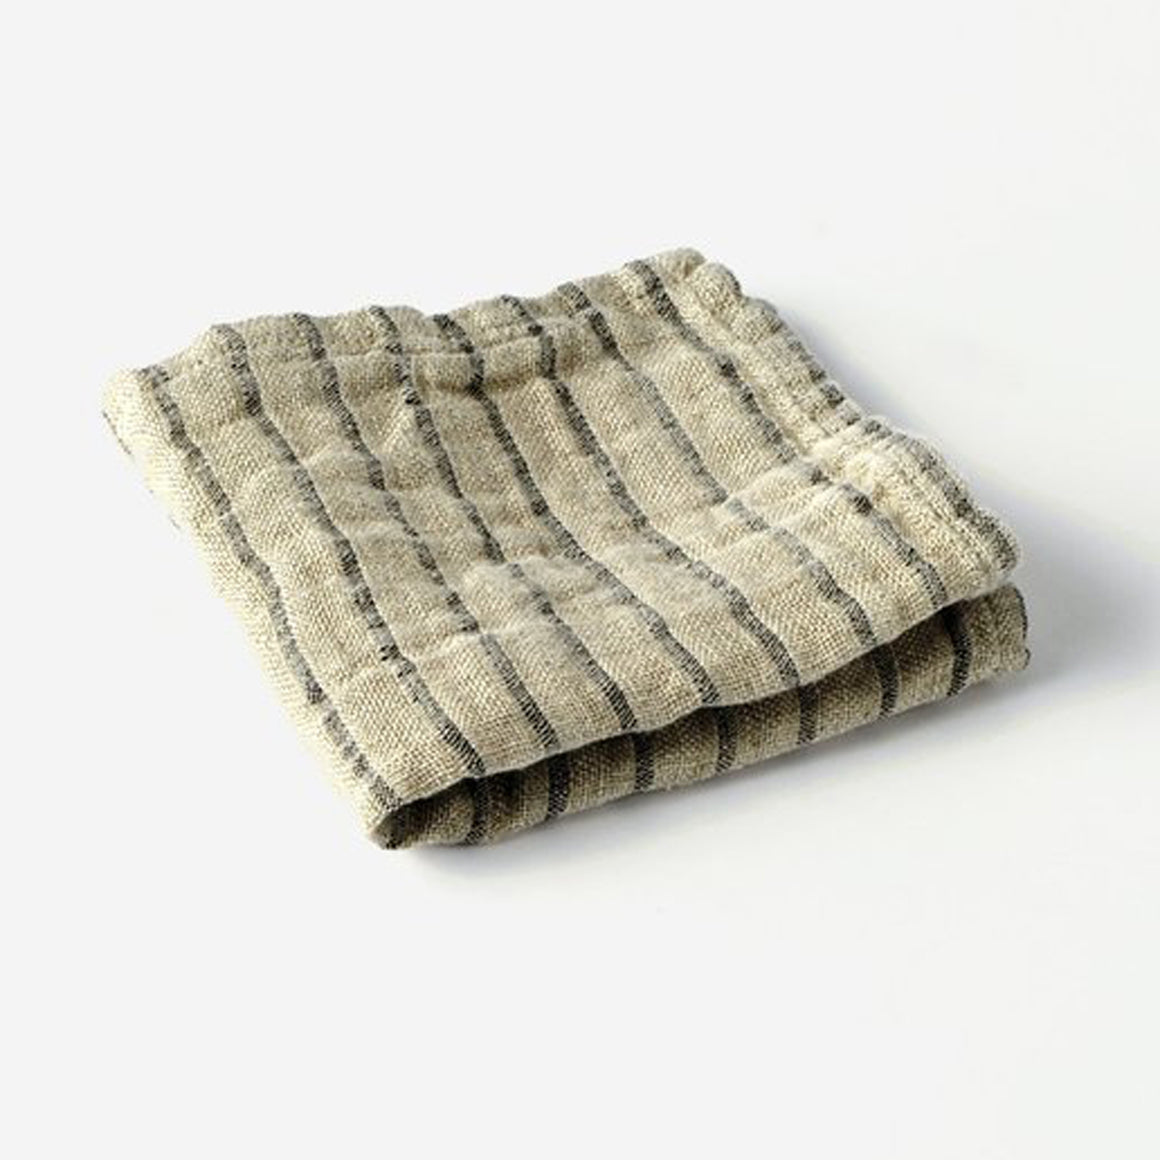 Black Striped Linen Wash Cloth - KESTREL